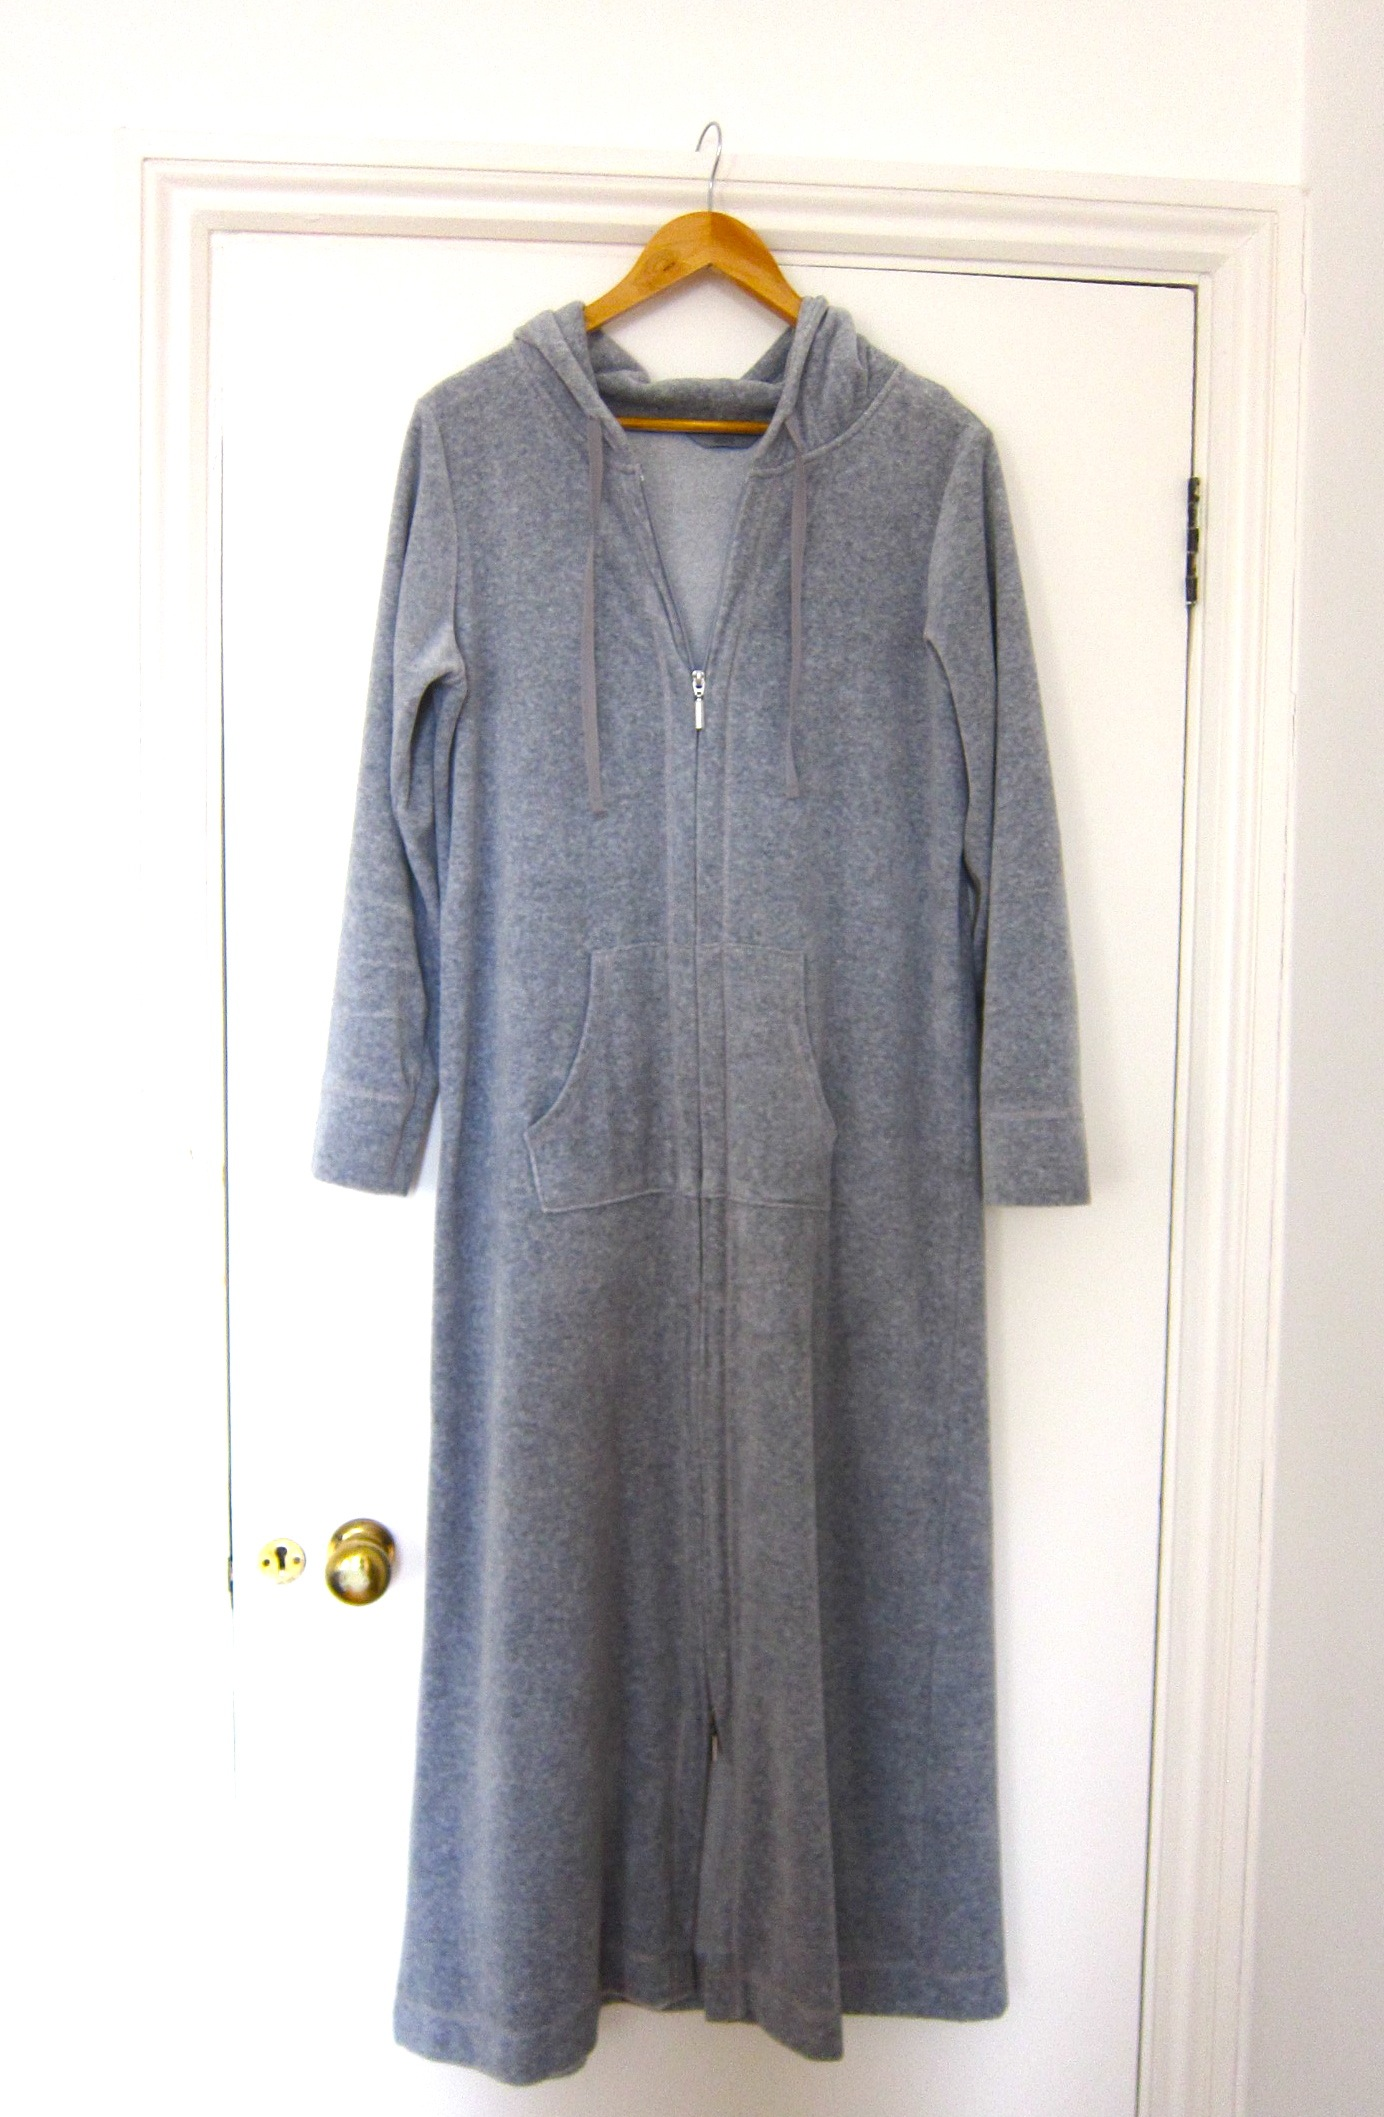 The snuggliest of dressing gowns for a soon-to-be desperate ...